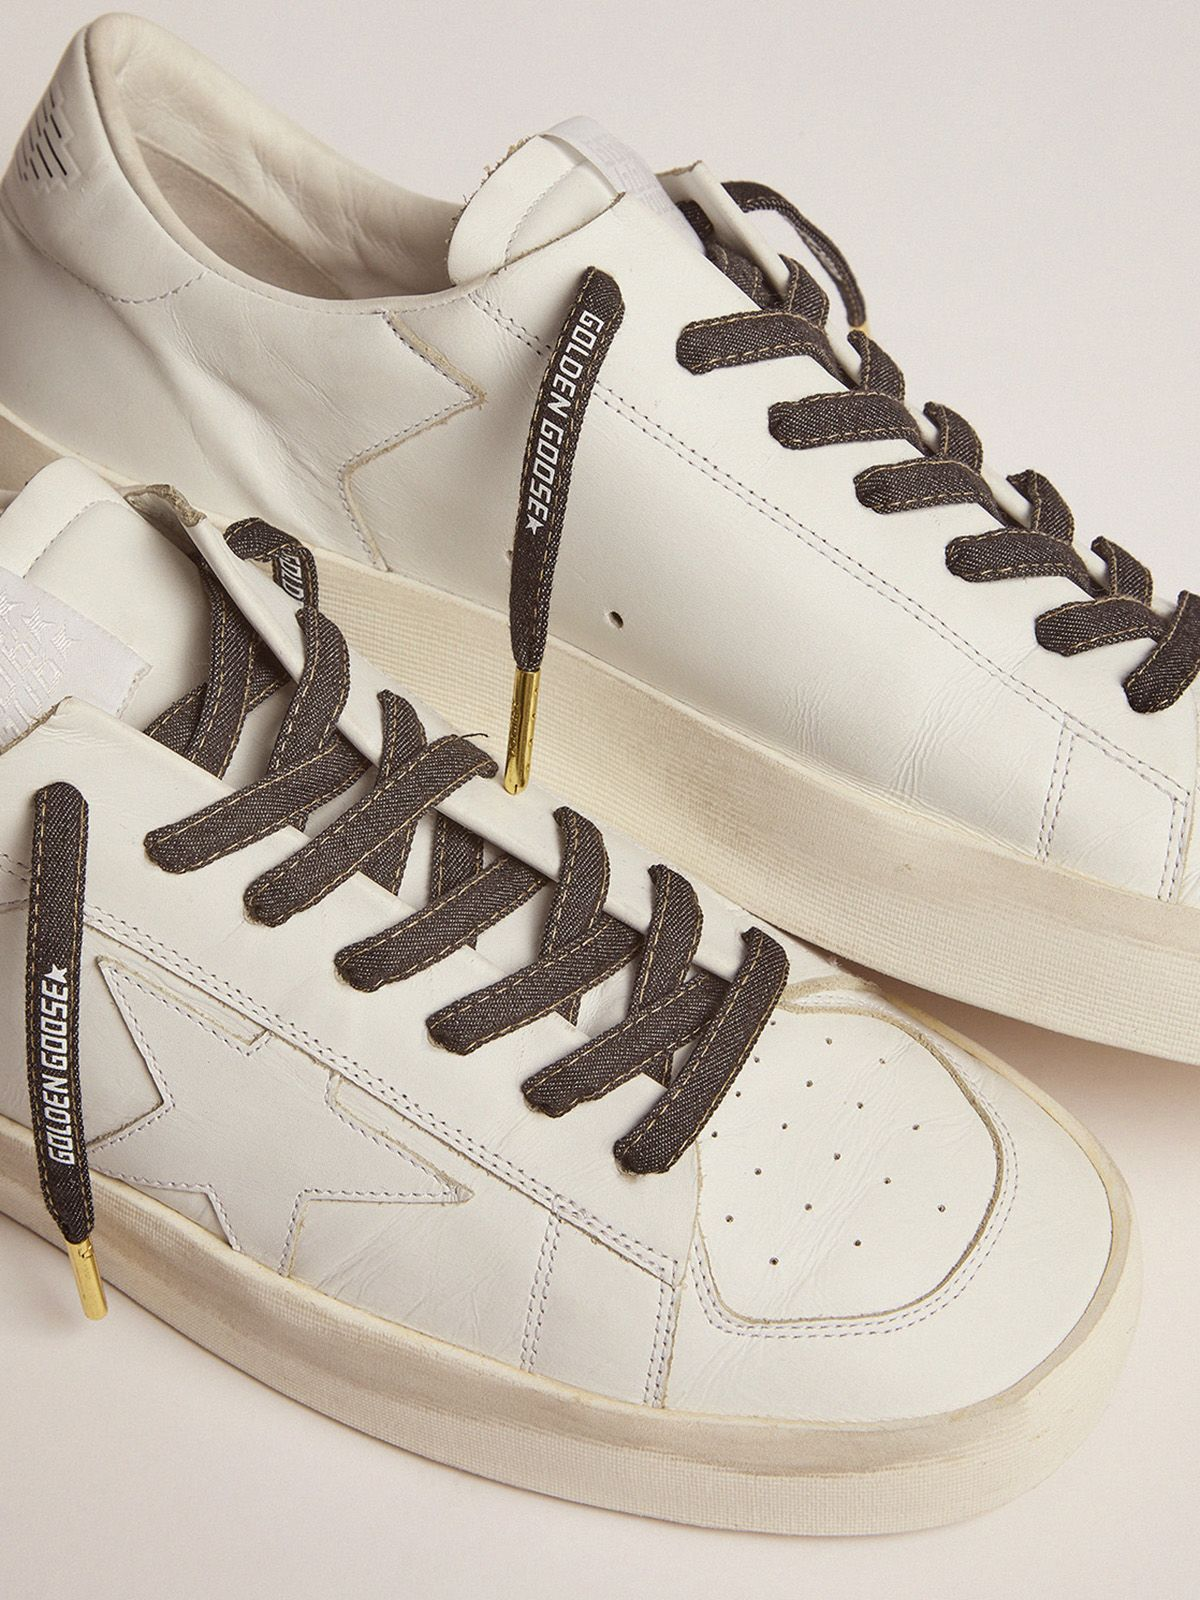 Golden Goose - Men's denim laces with white logo in